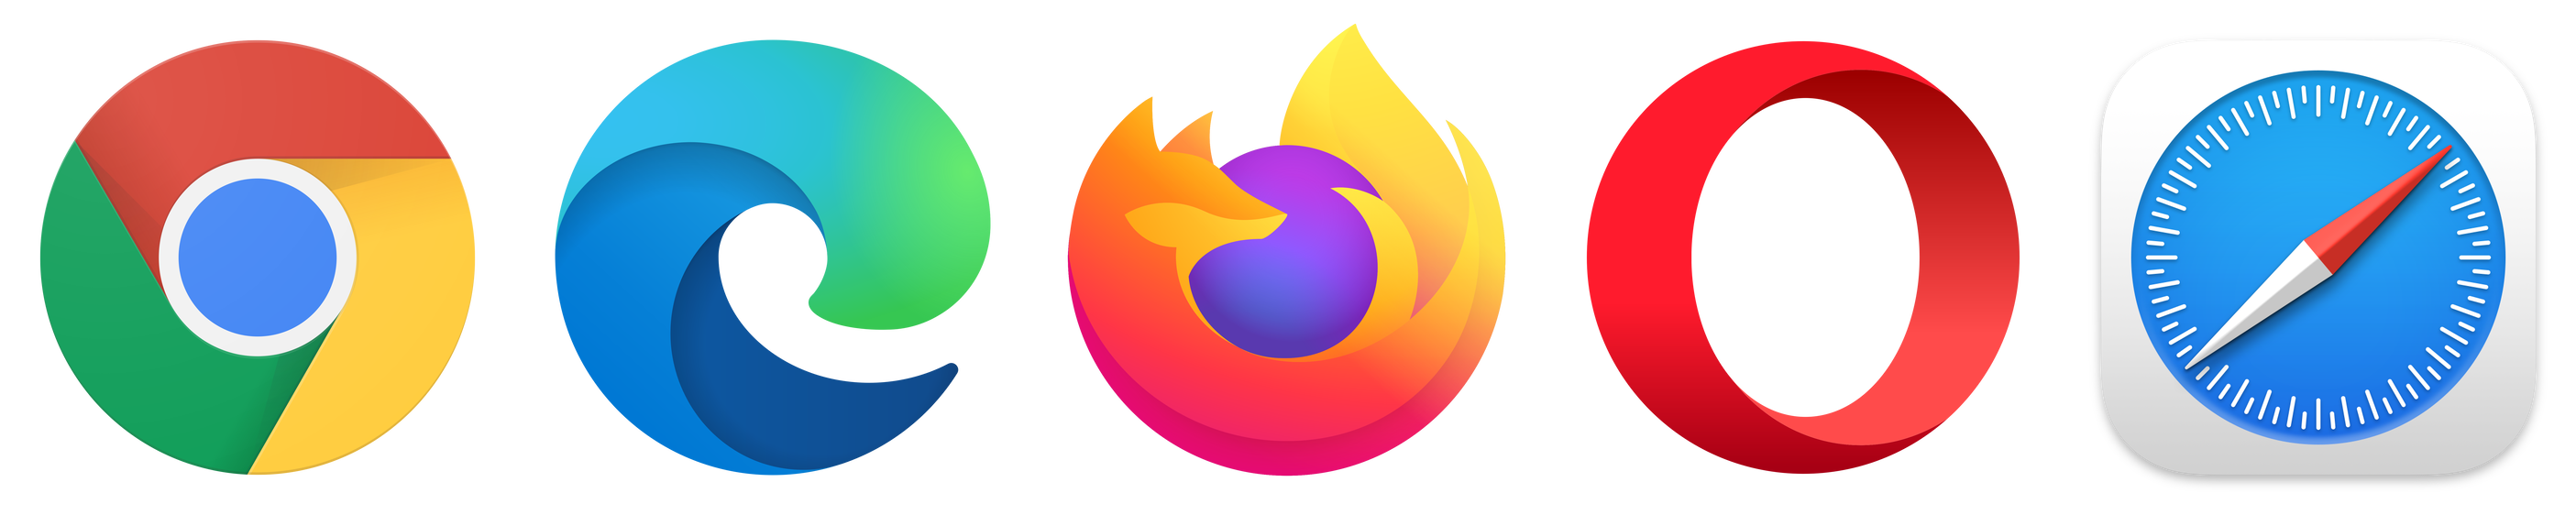 image of differing browser icons